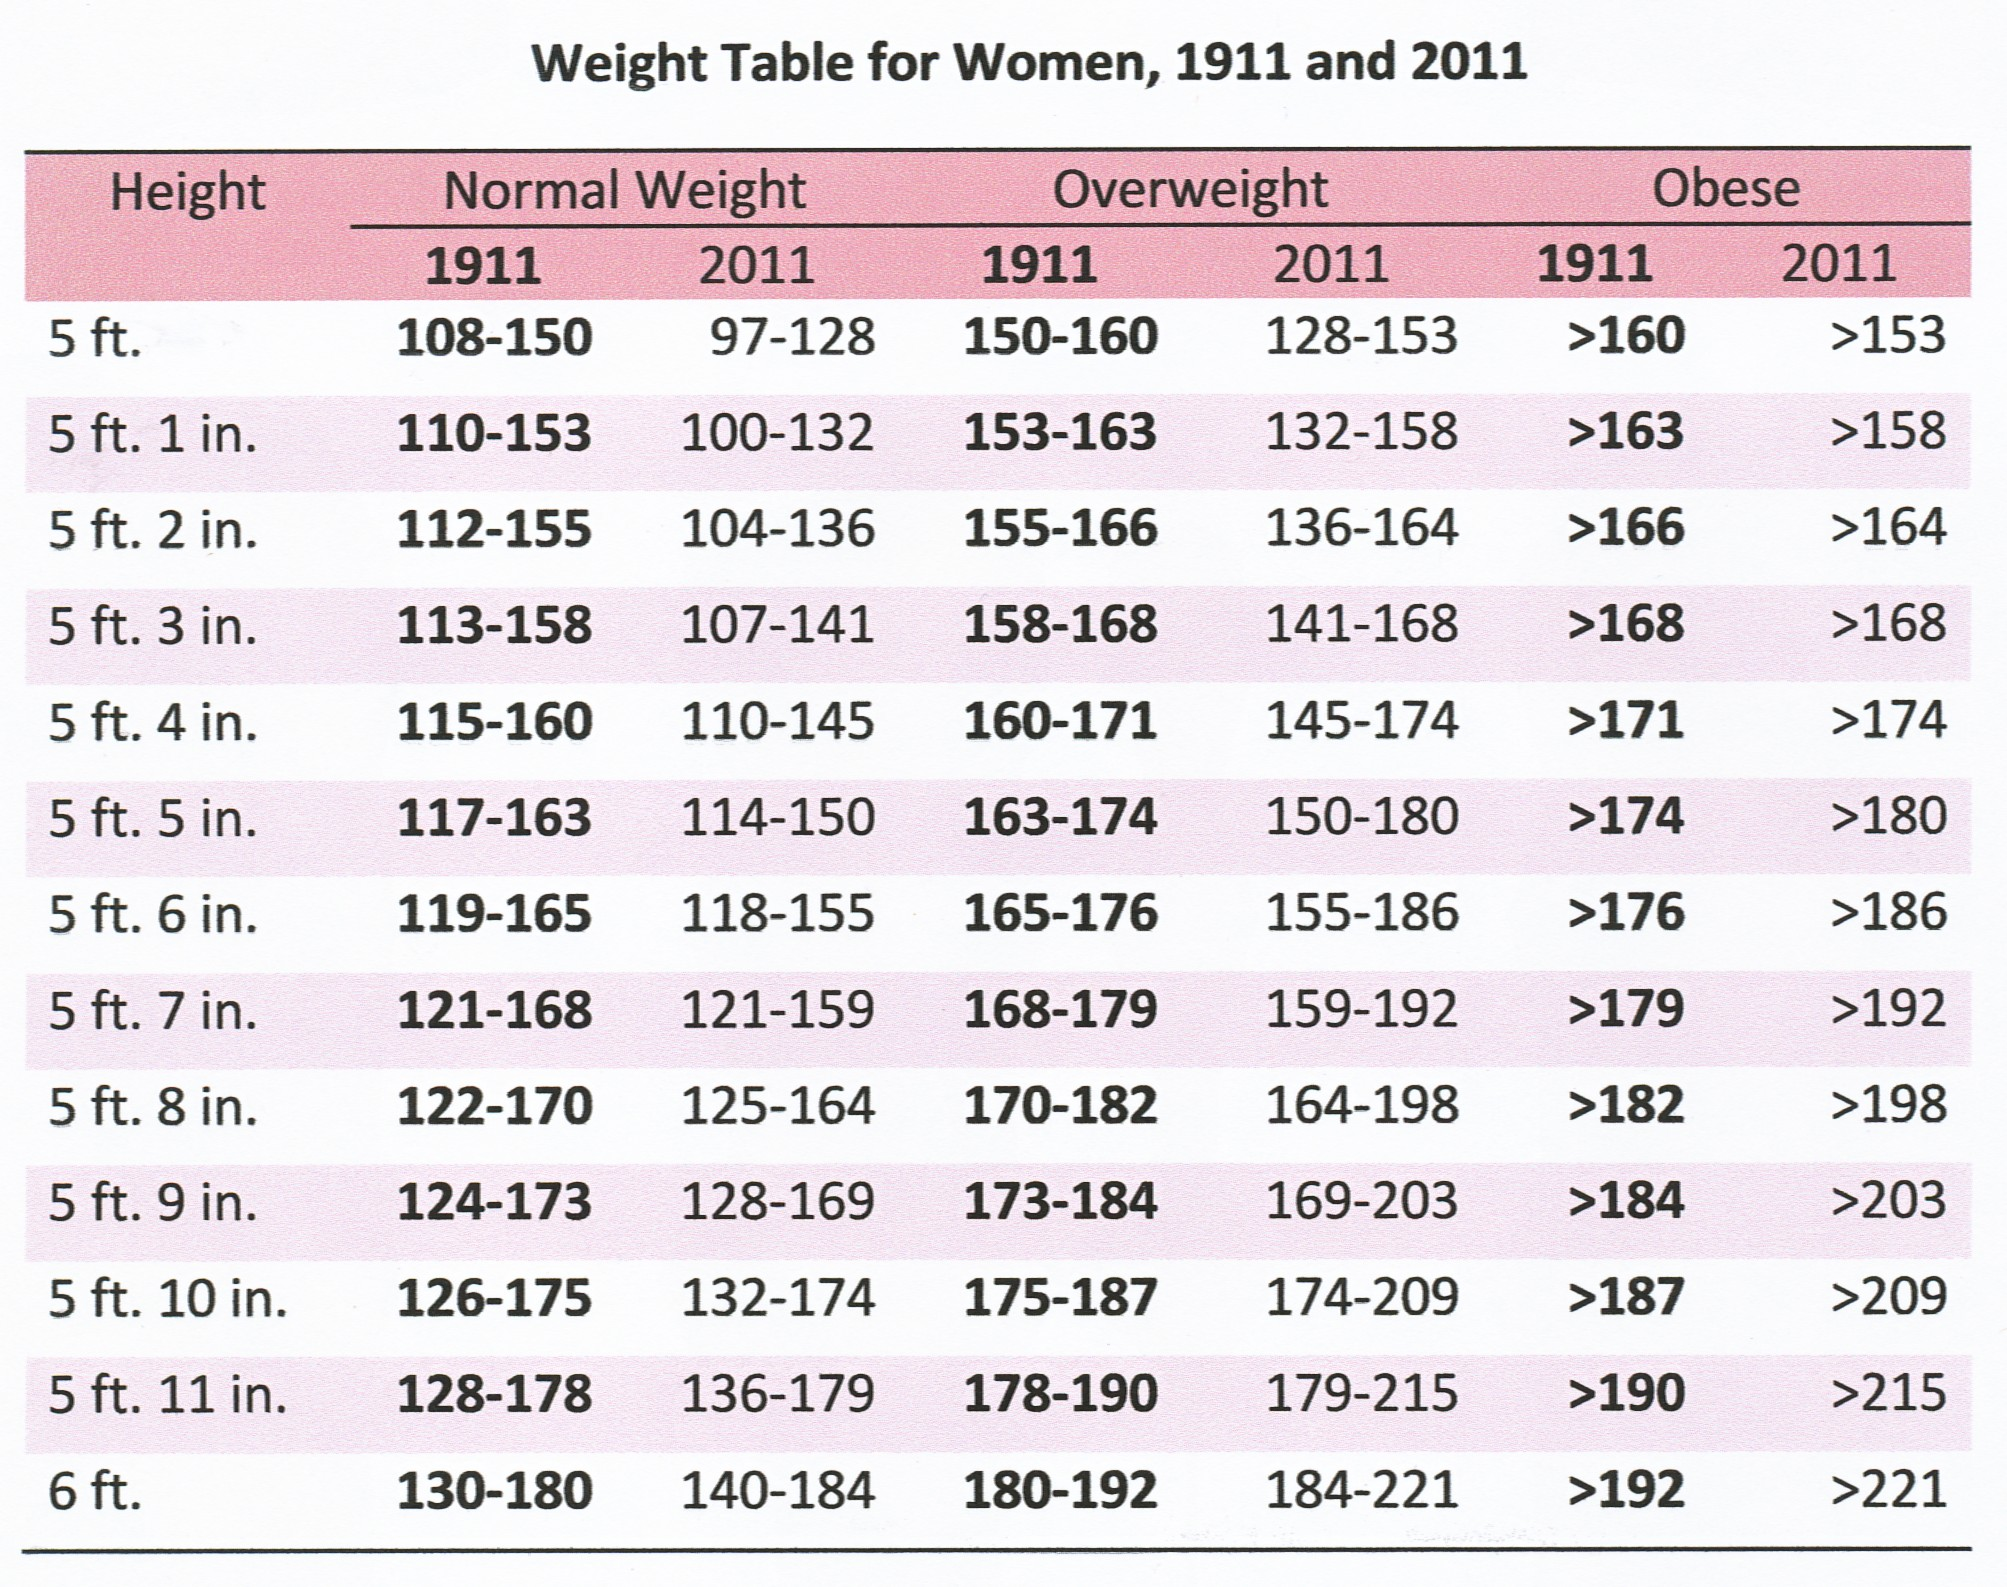 Little research and found how one author defined obesity 100 years